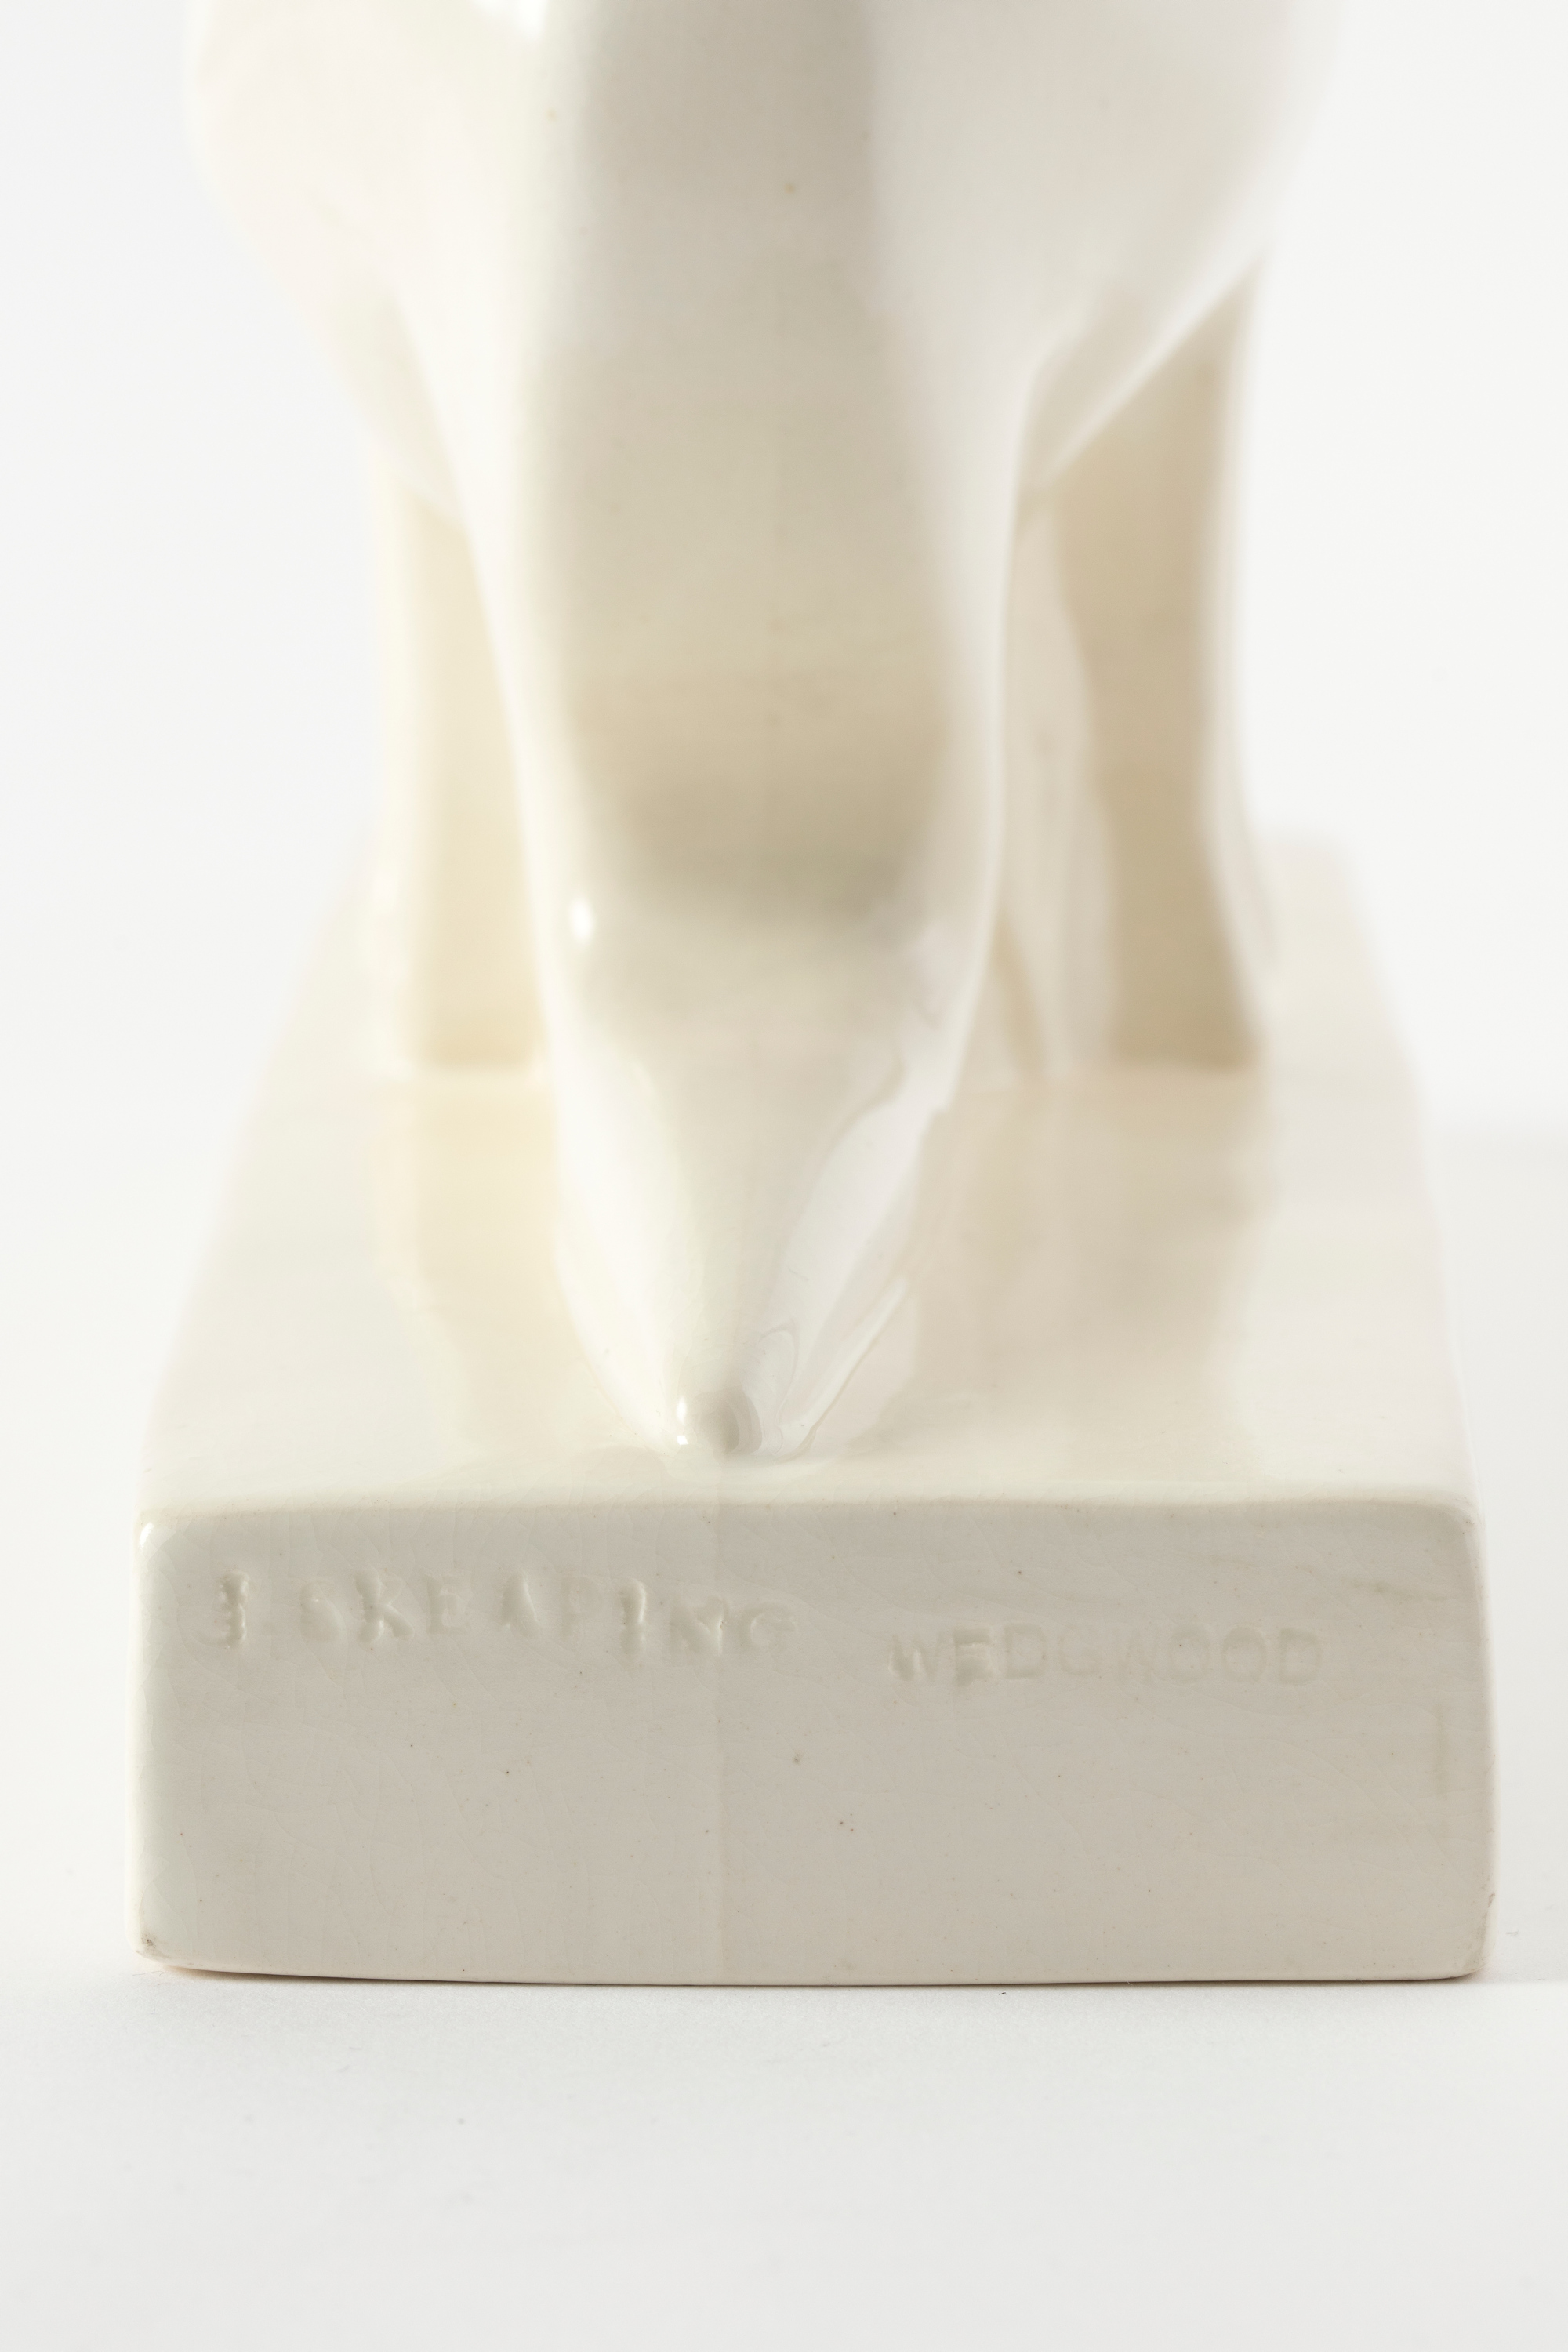 Rectangular base of a white earthenware figure showing the imprinted text 'J SKEAPING / WEDGWOOD'.